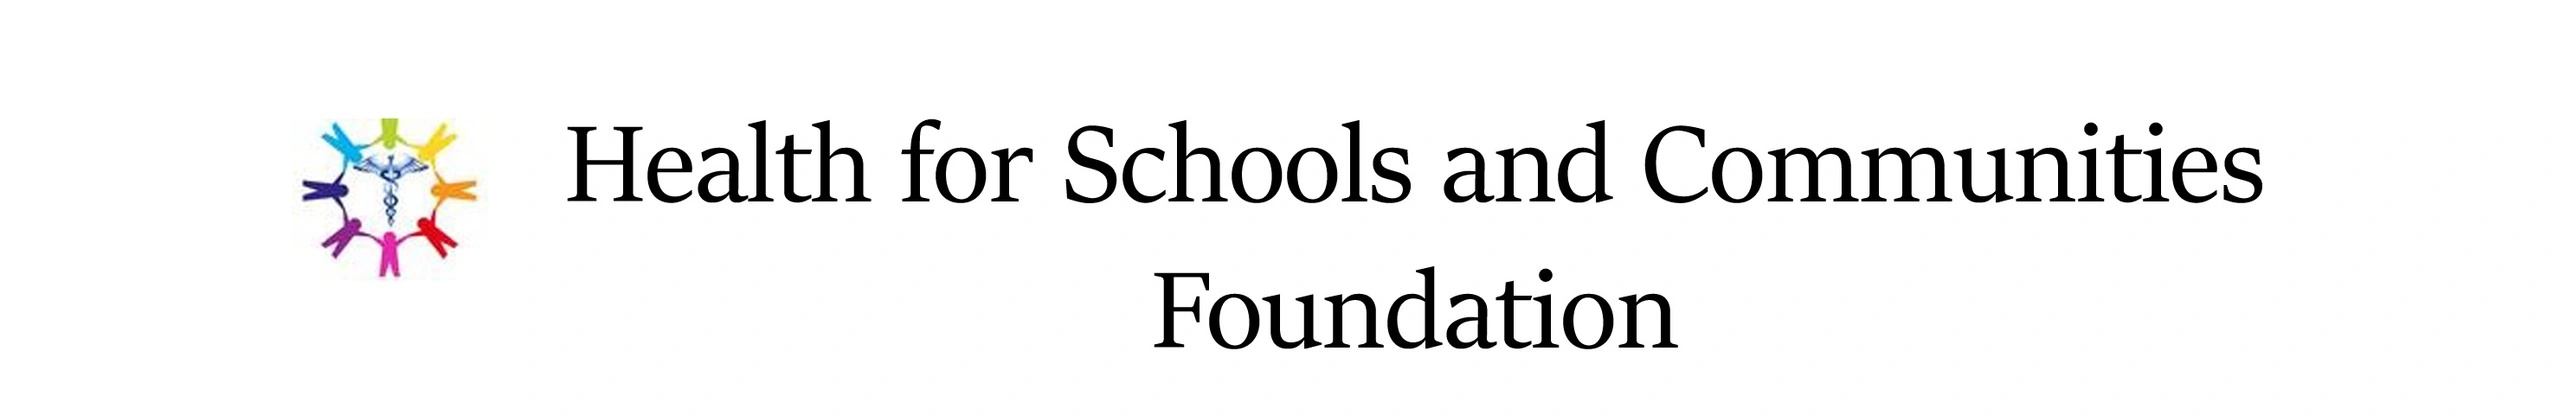 Health for Schools and Communities Foundation